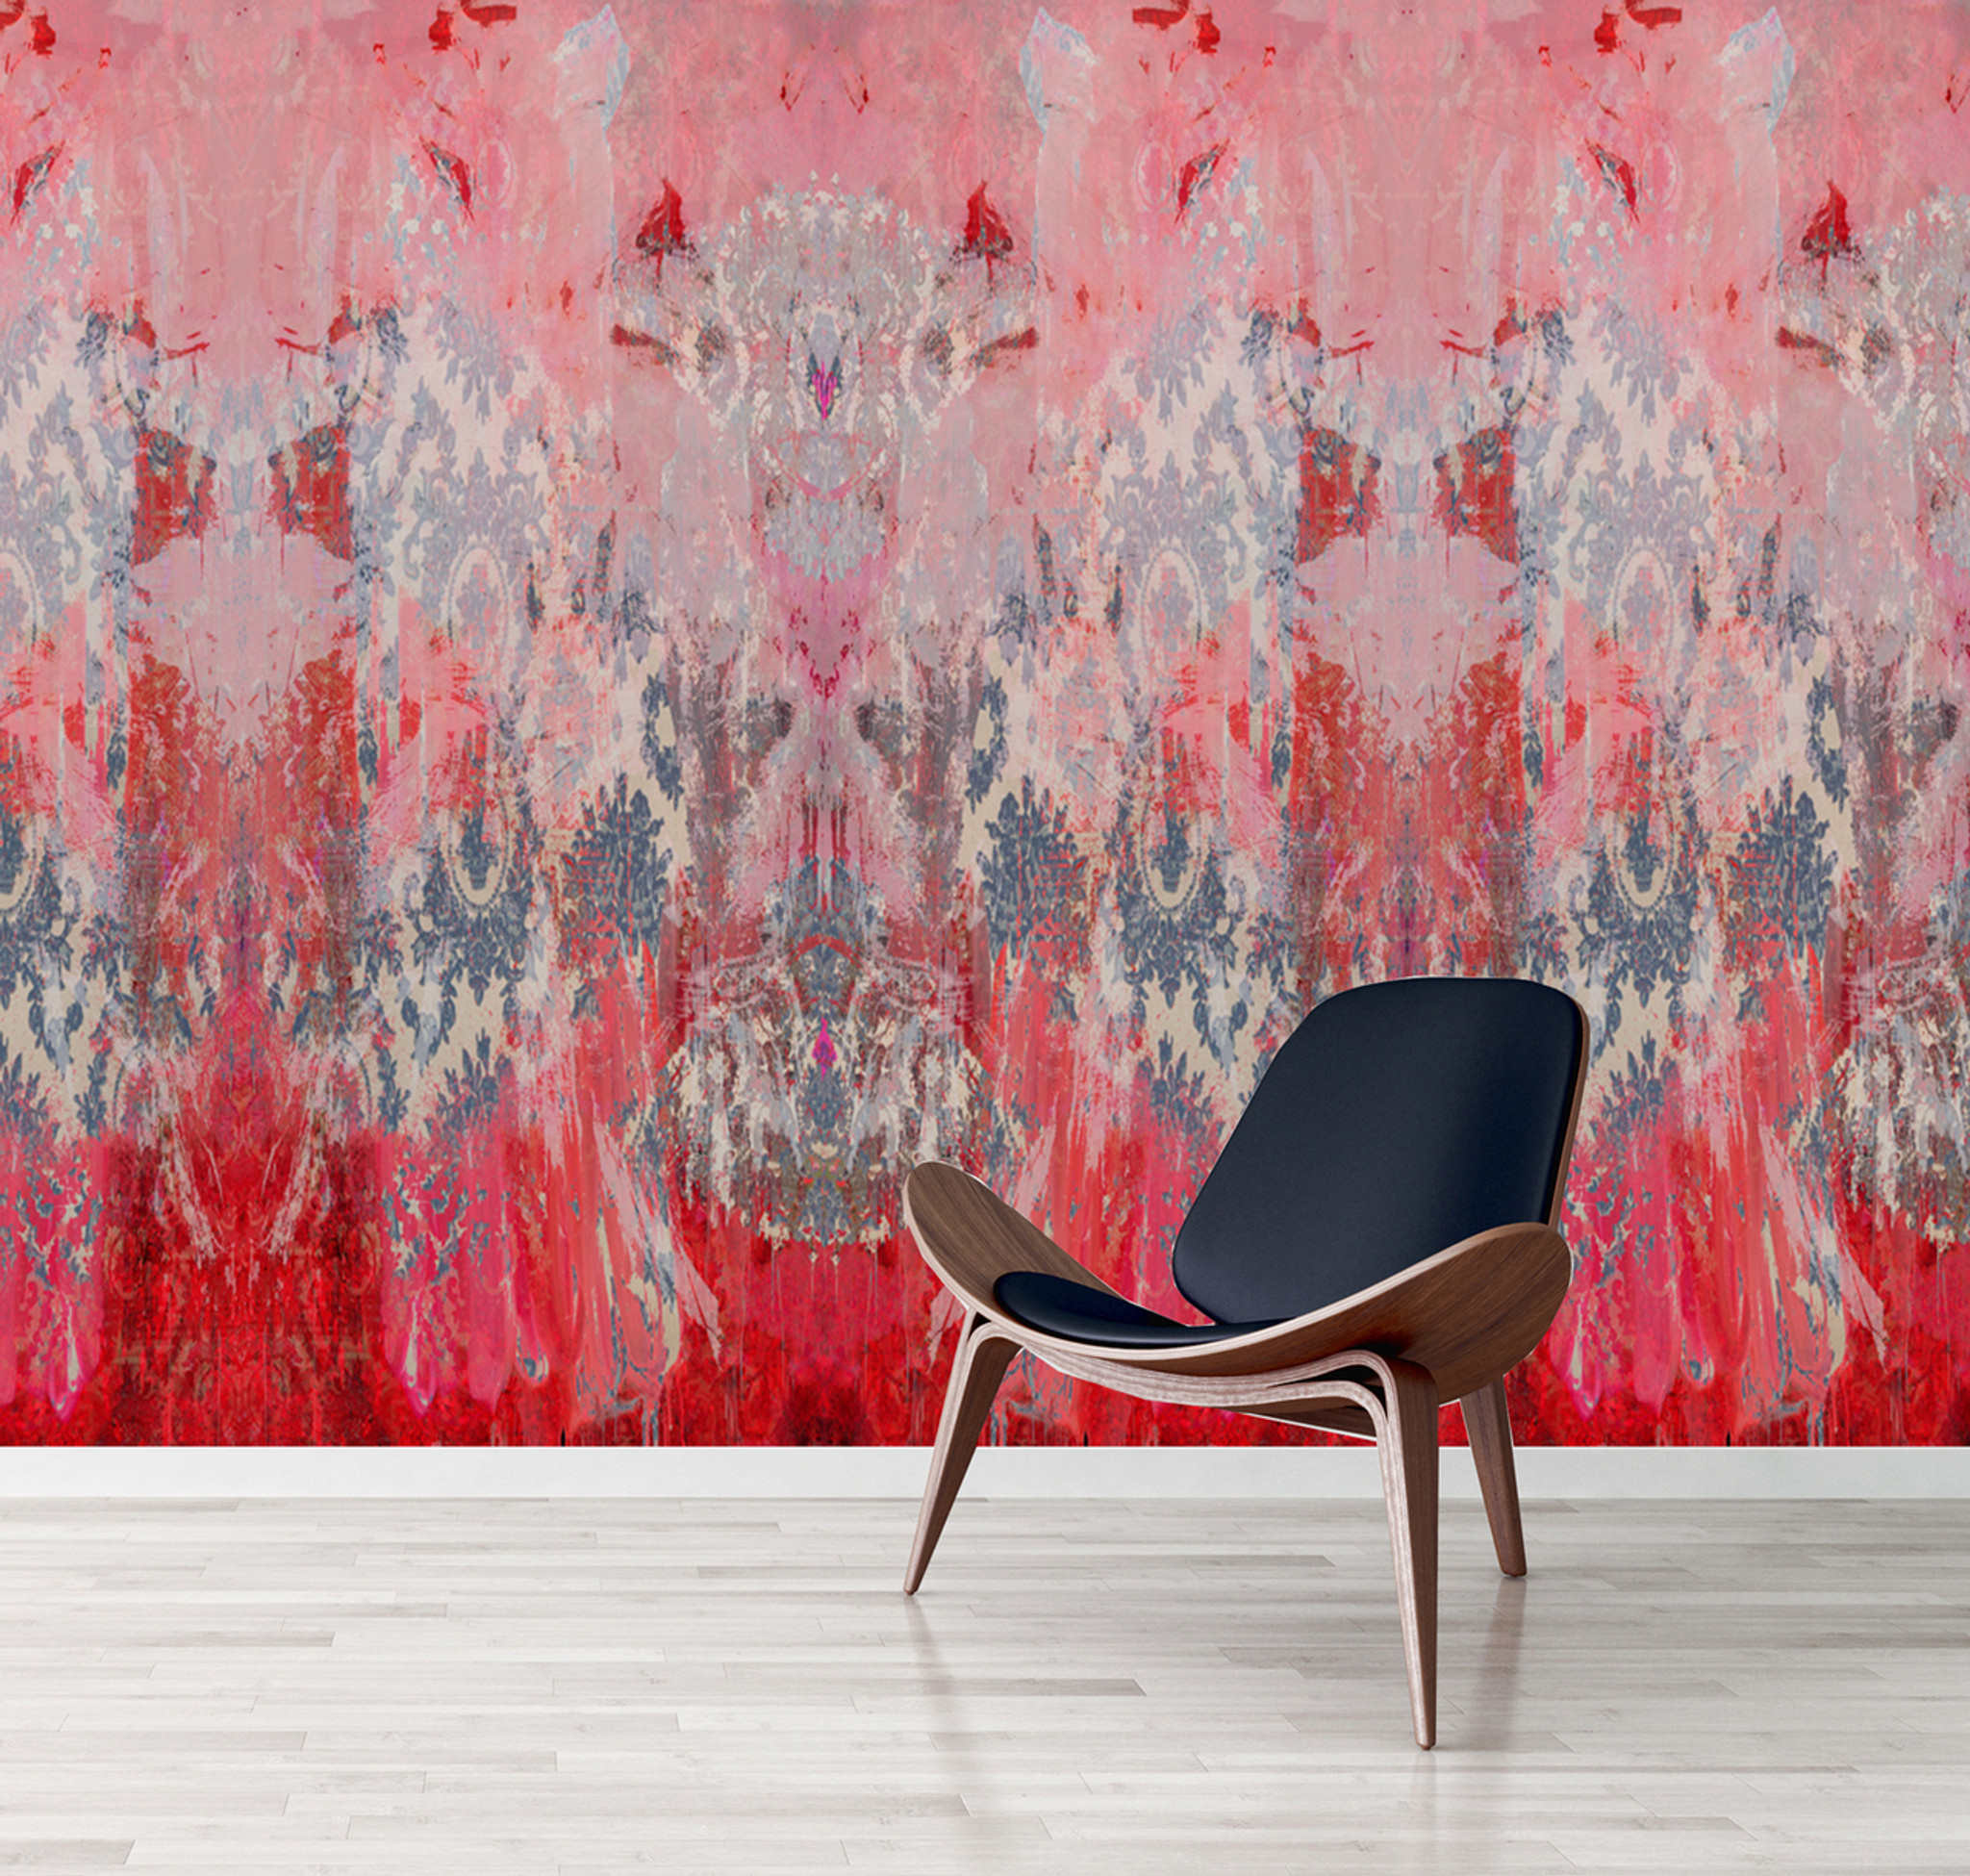 Wallpaper - Damask in Distress _ Fading Pink